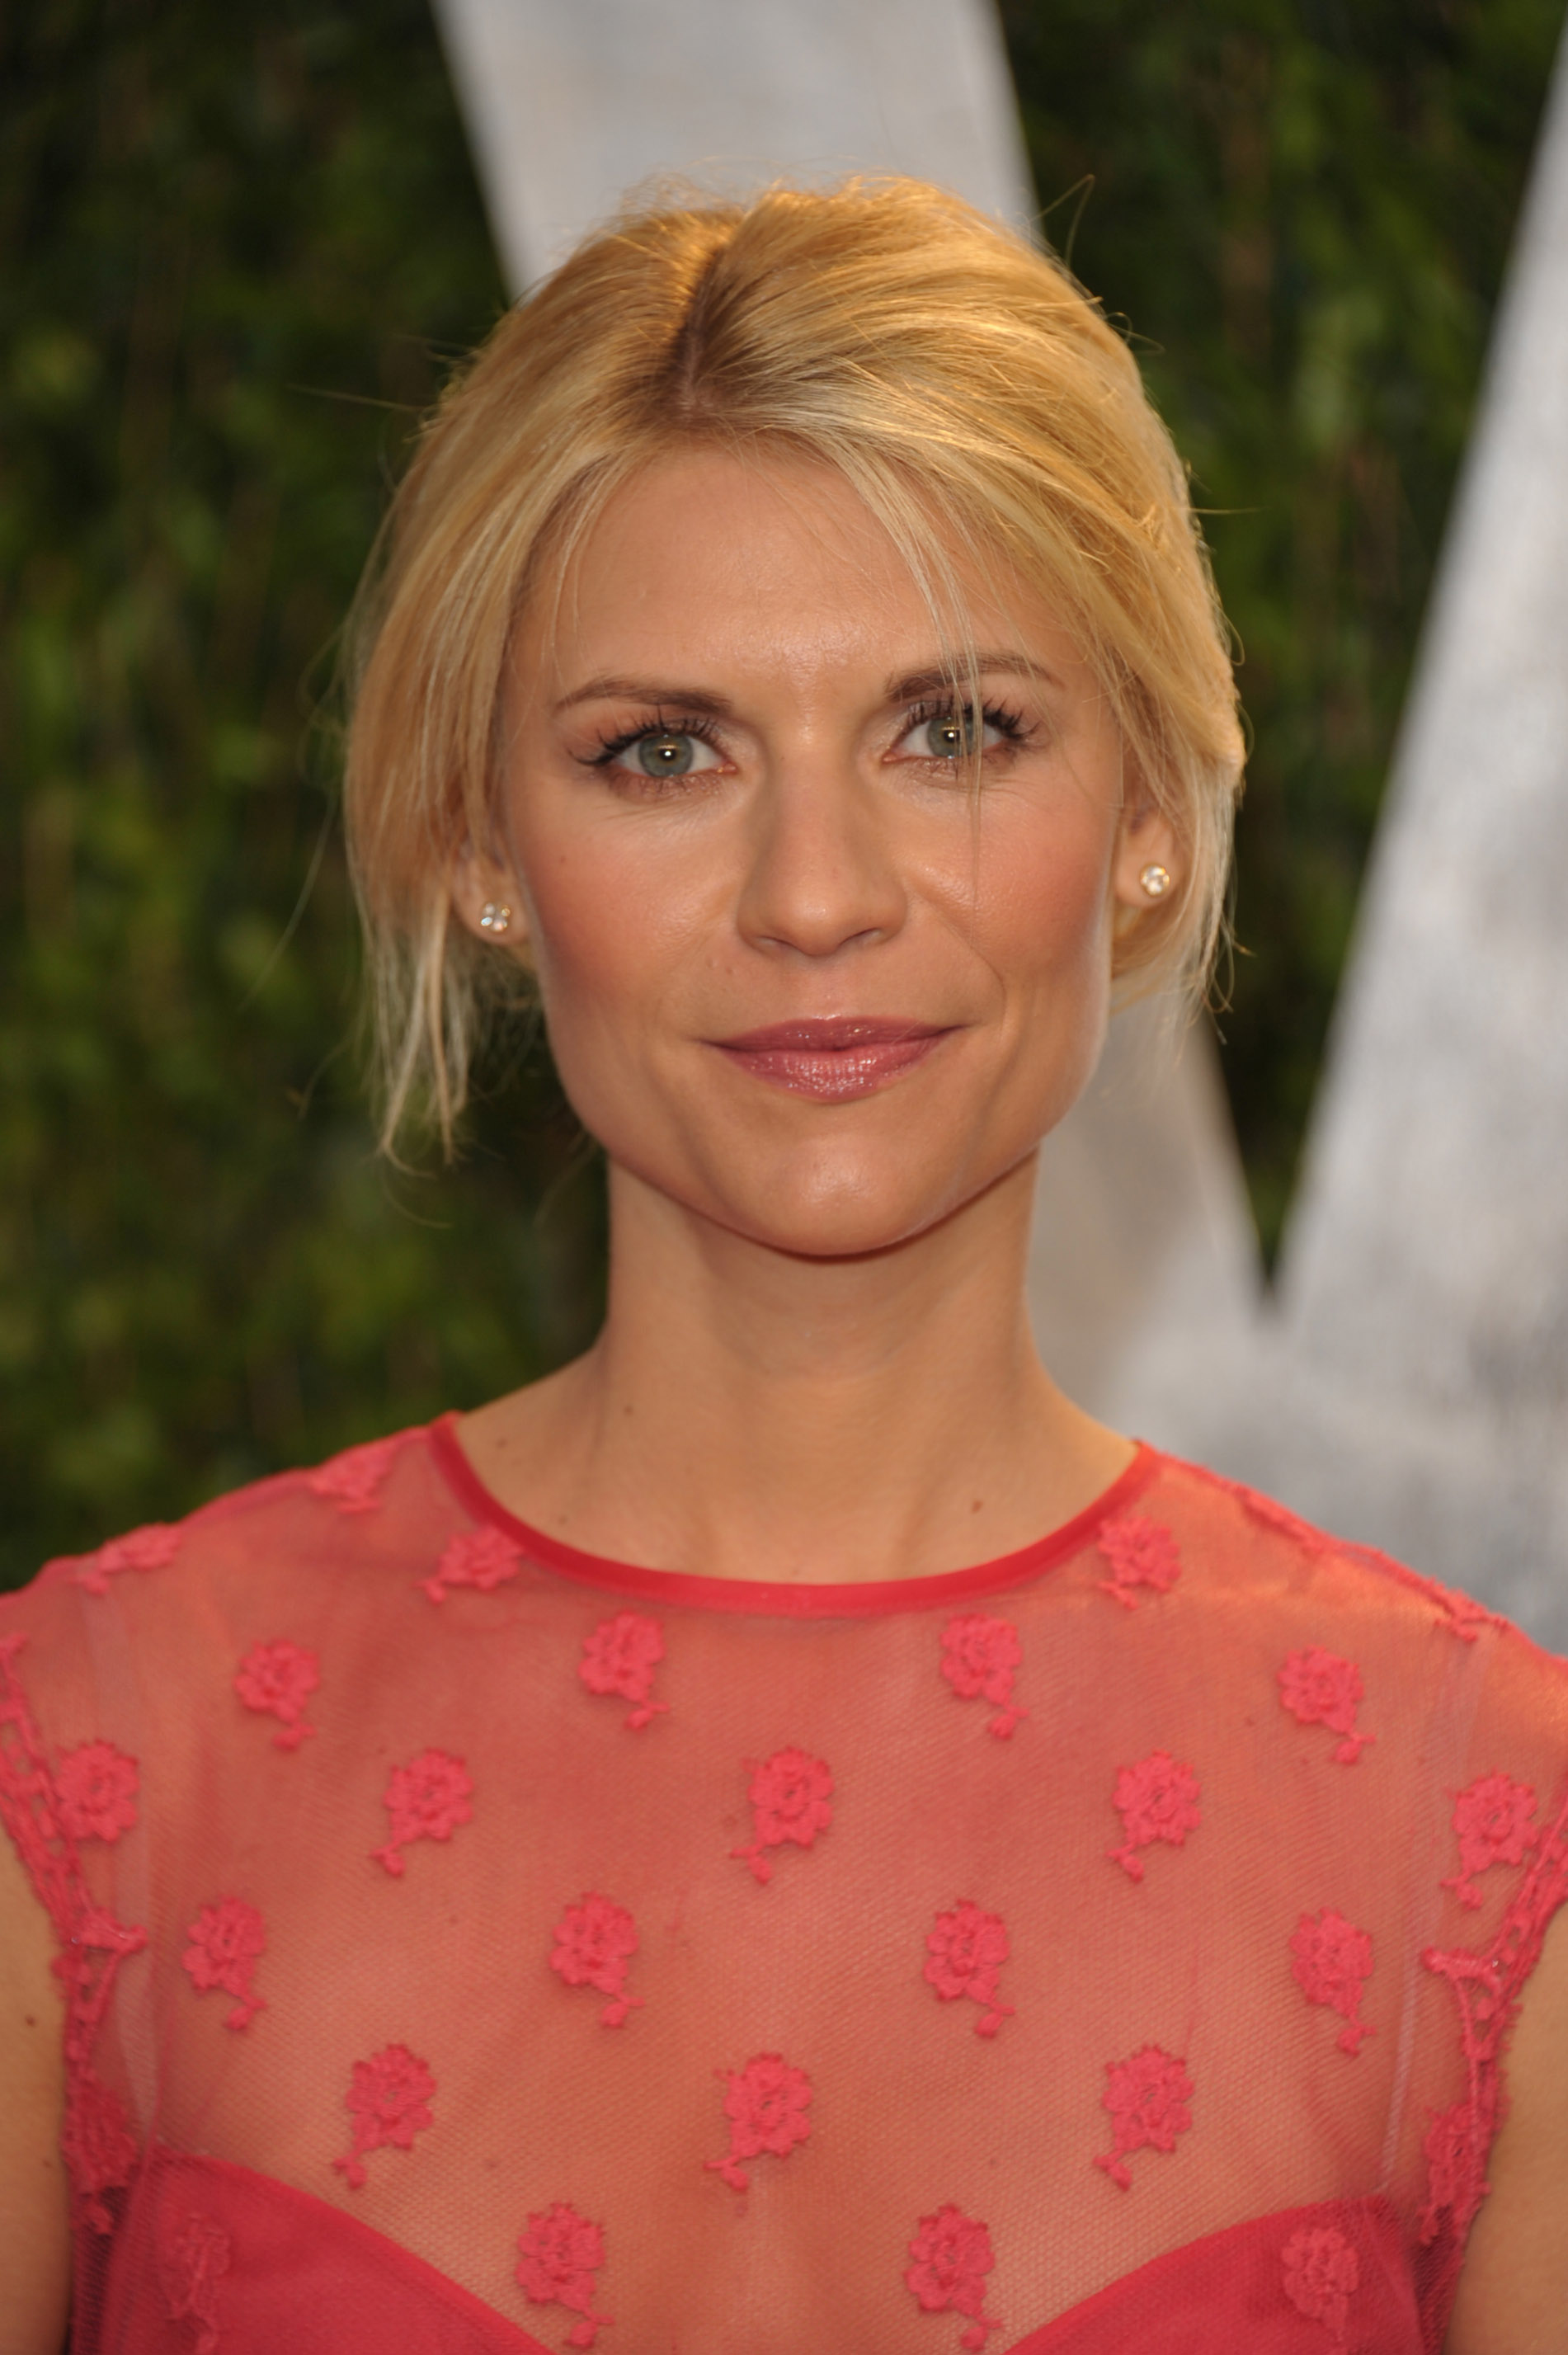 Claire Danes arrives at the Vanity Fair party.